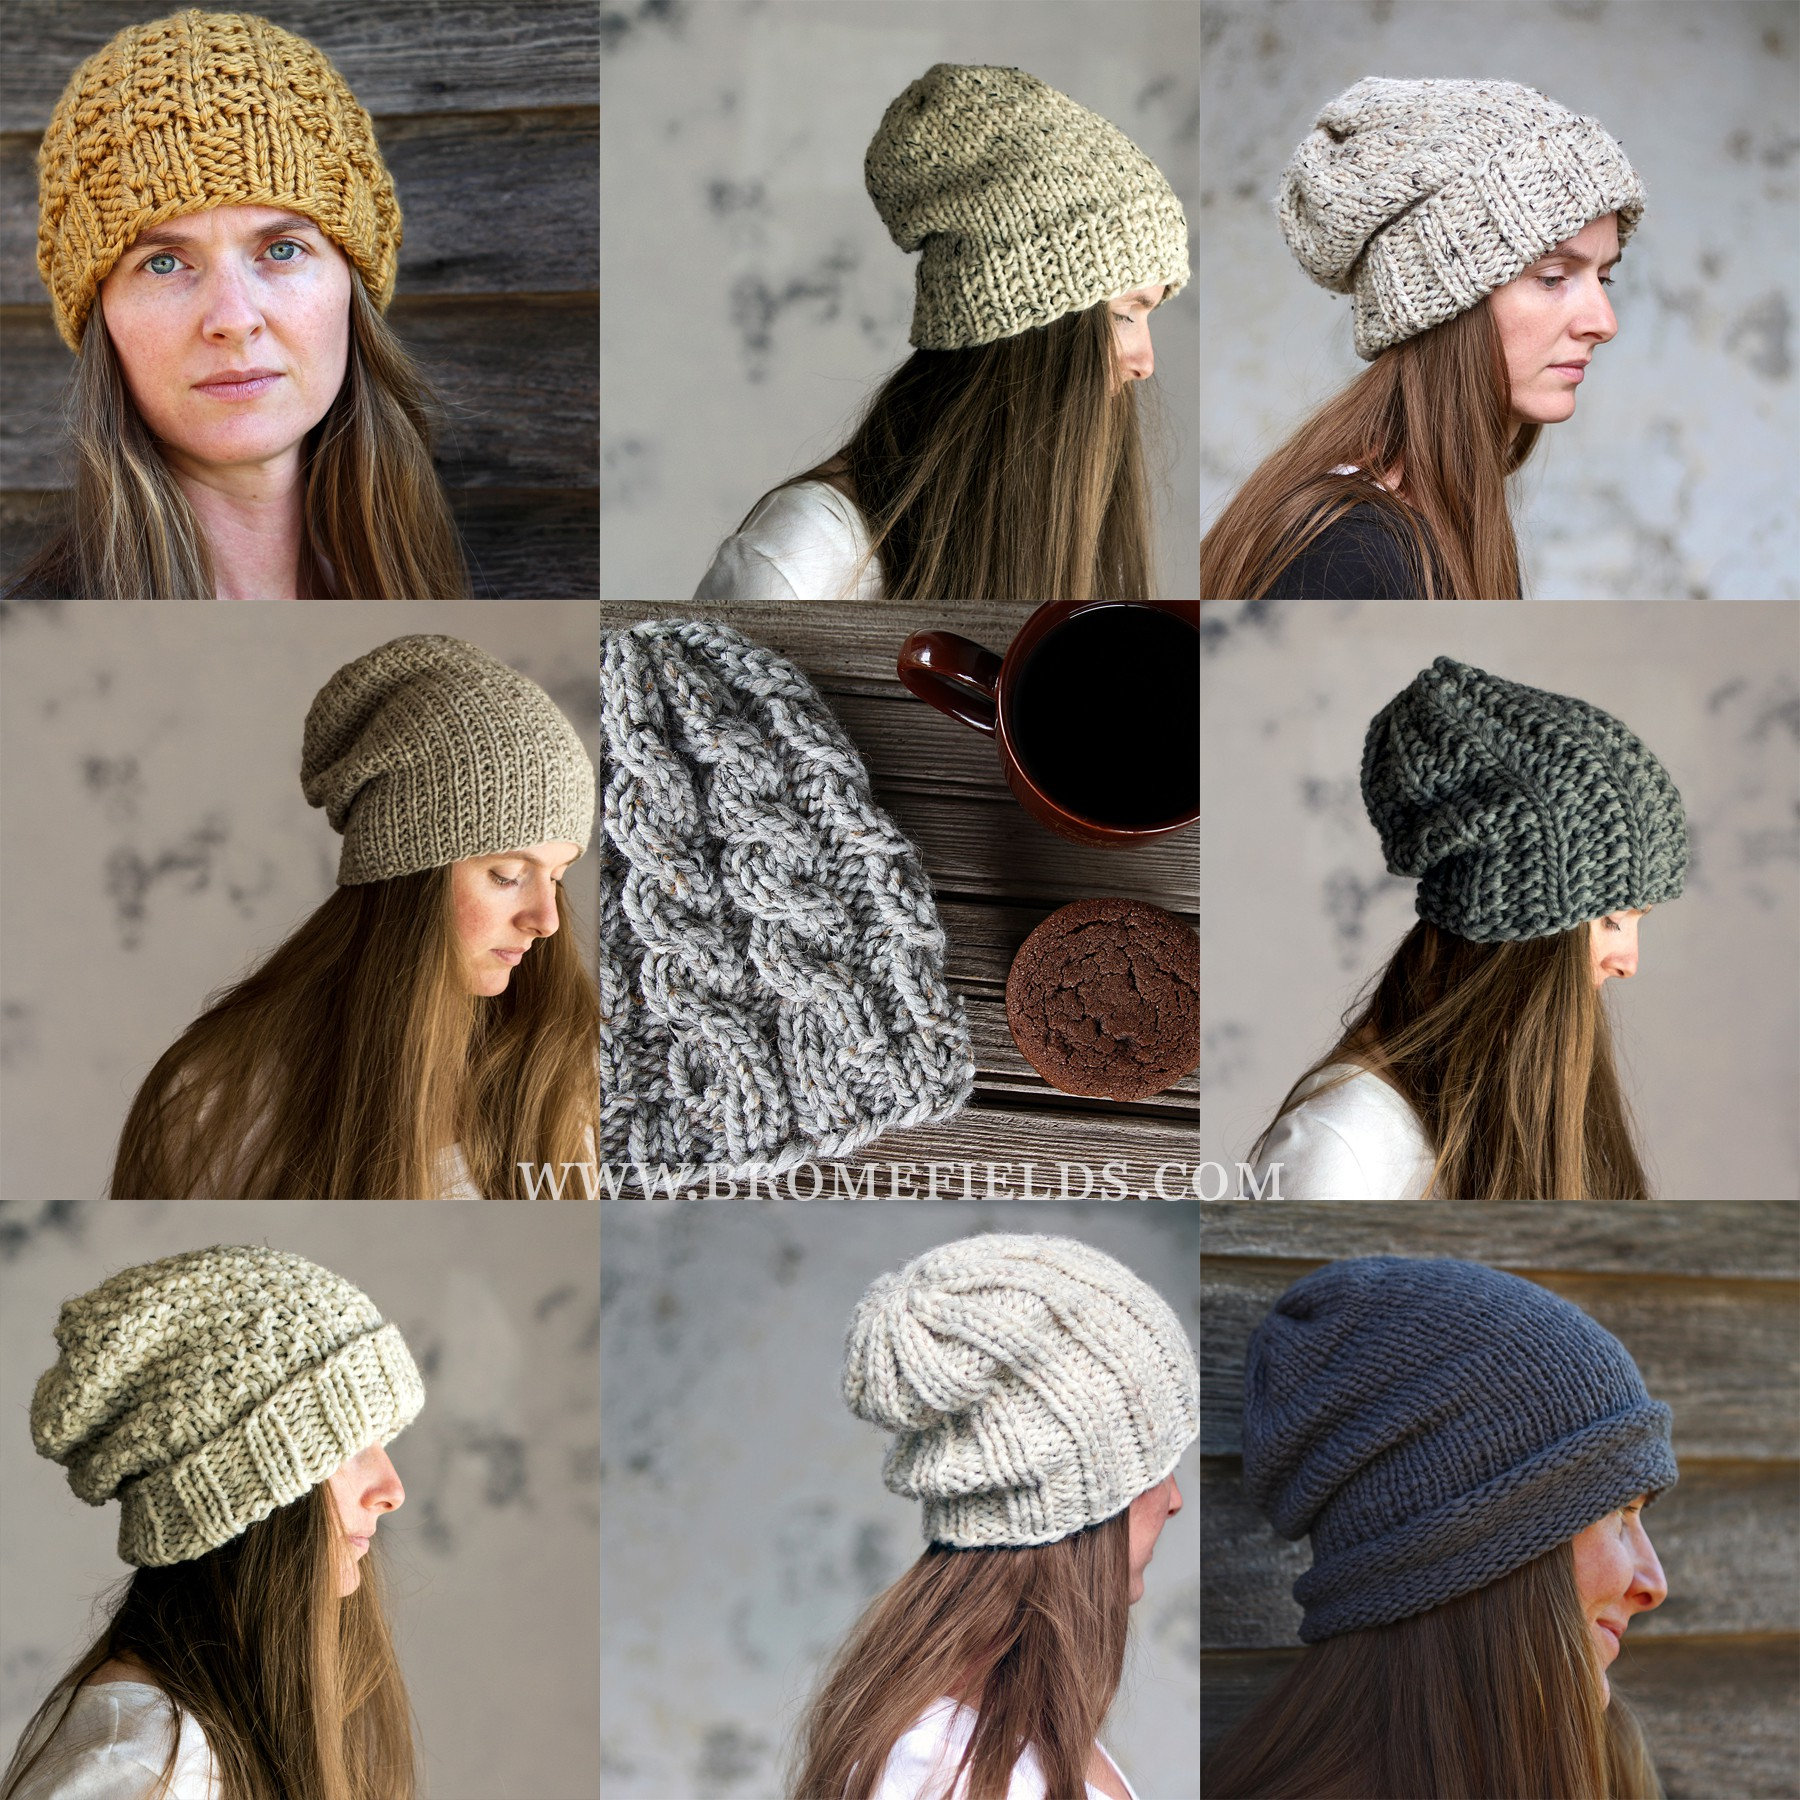 Top 10 Hat Knitting Patterns by Brome Fields - Brome Fields